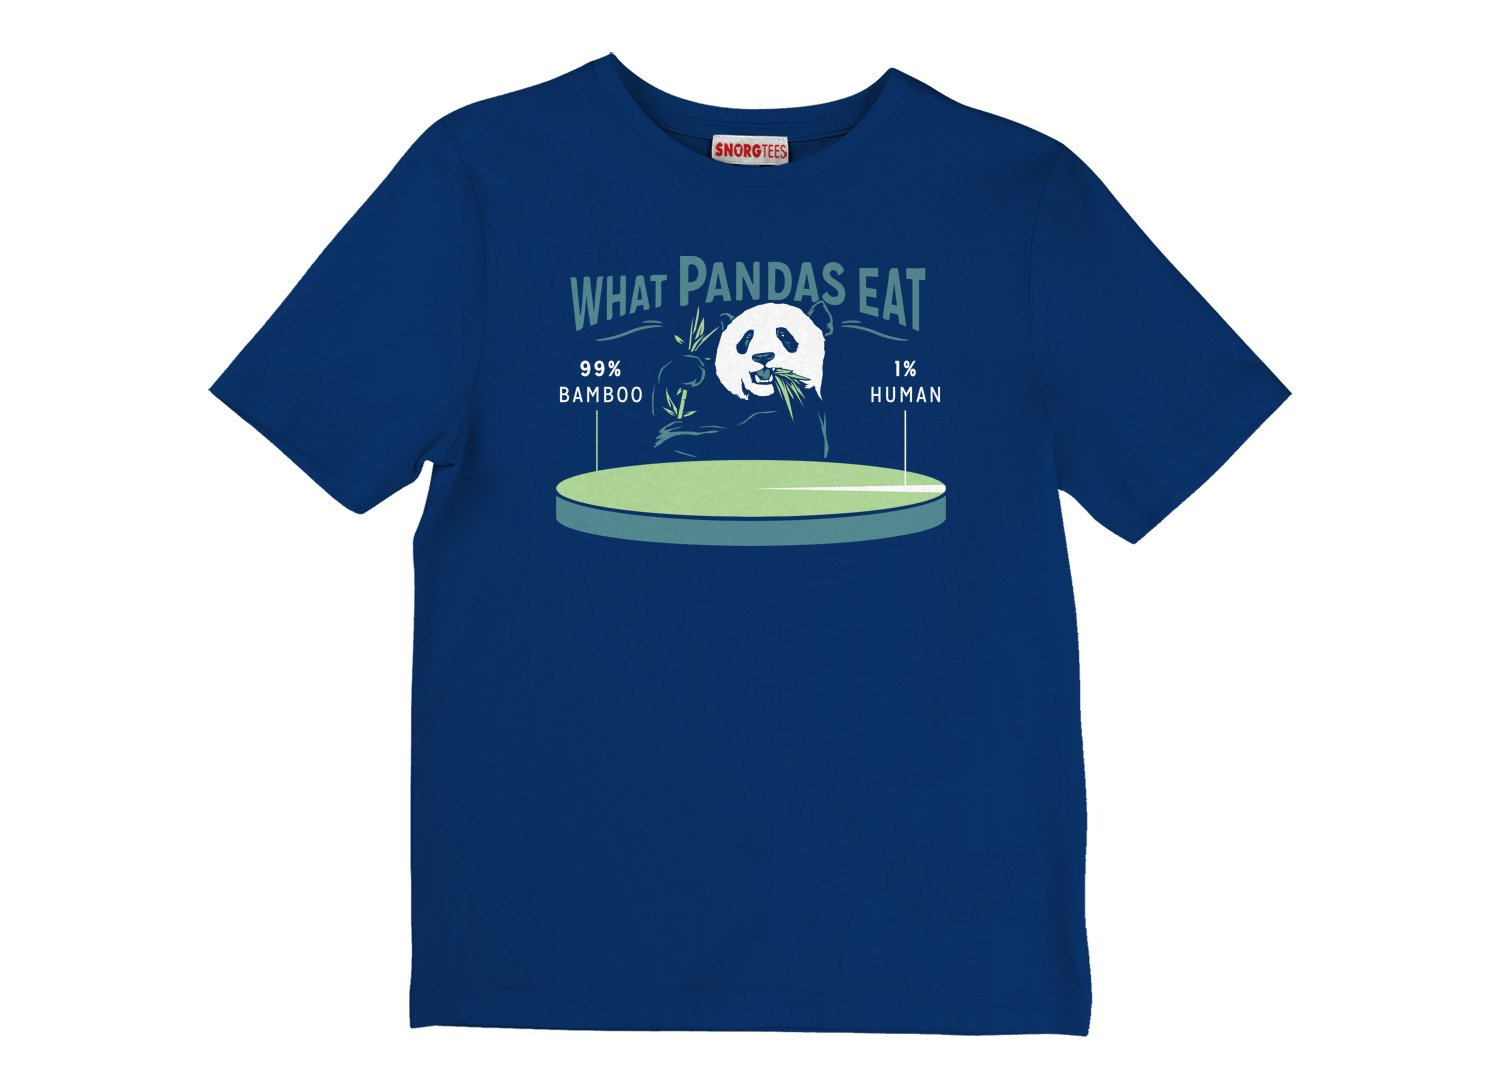 What Pandas Eat on Kids T-Shirt